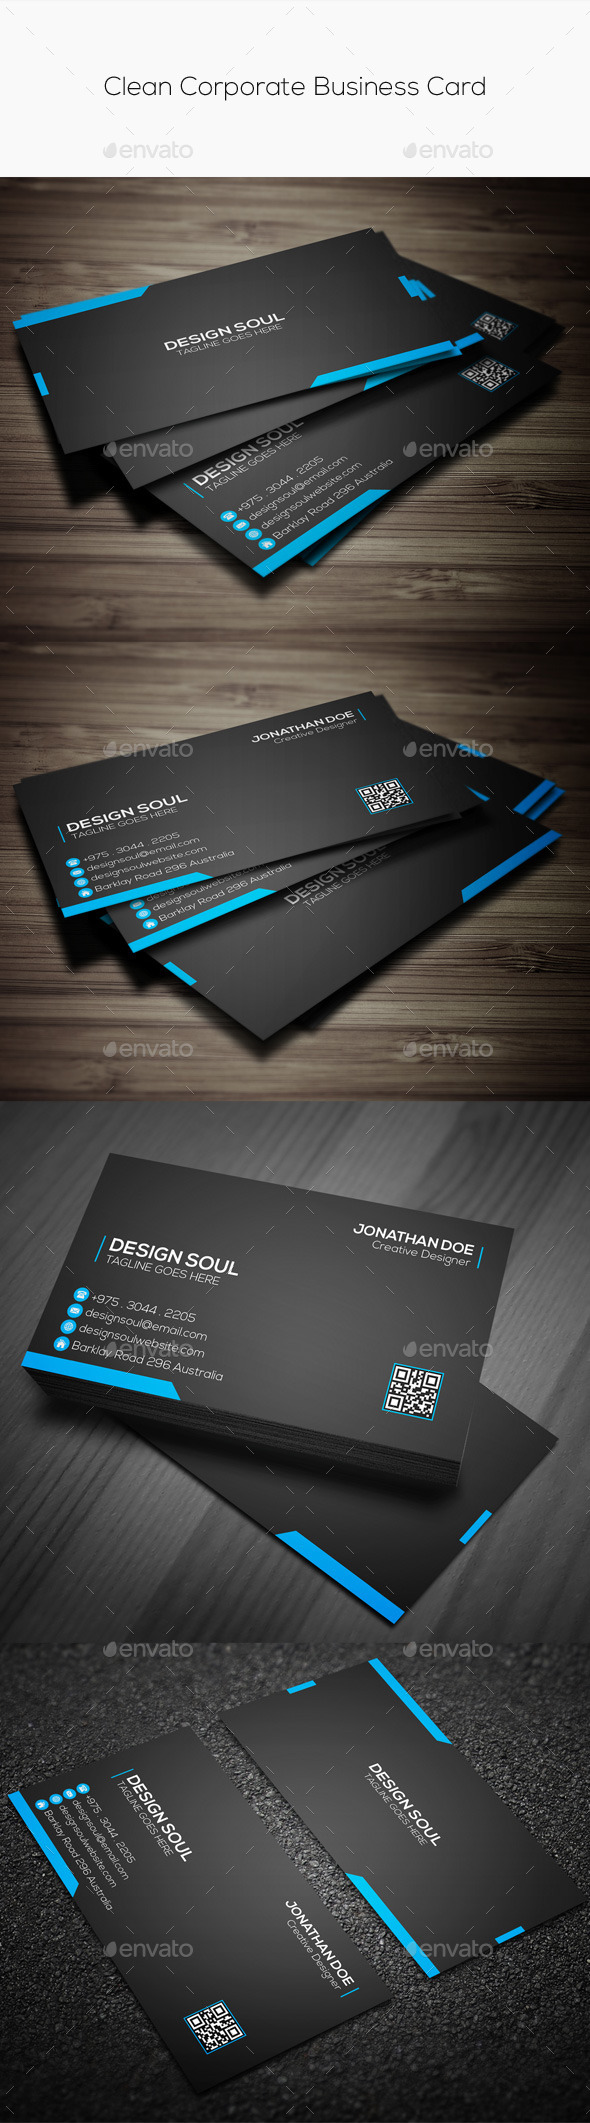 GraphicRiver Clean Corporate Business Card 9585564